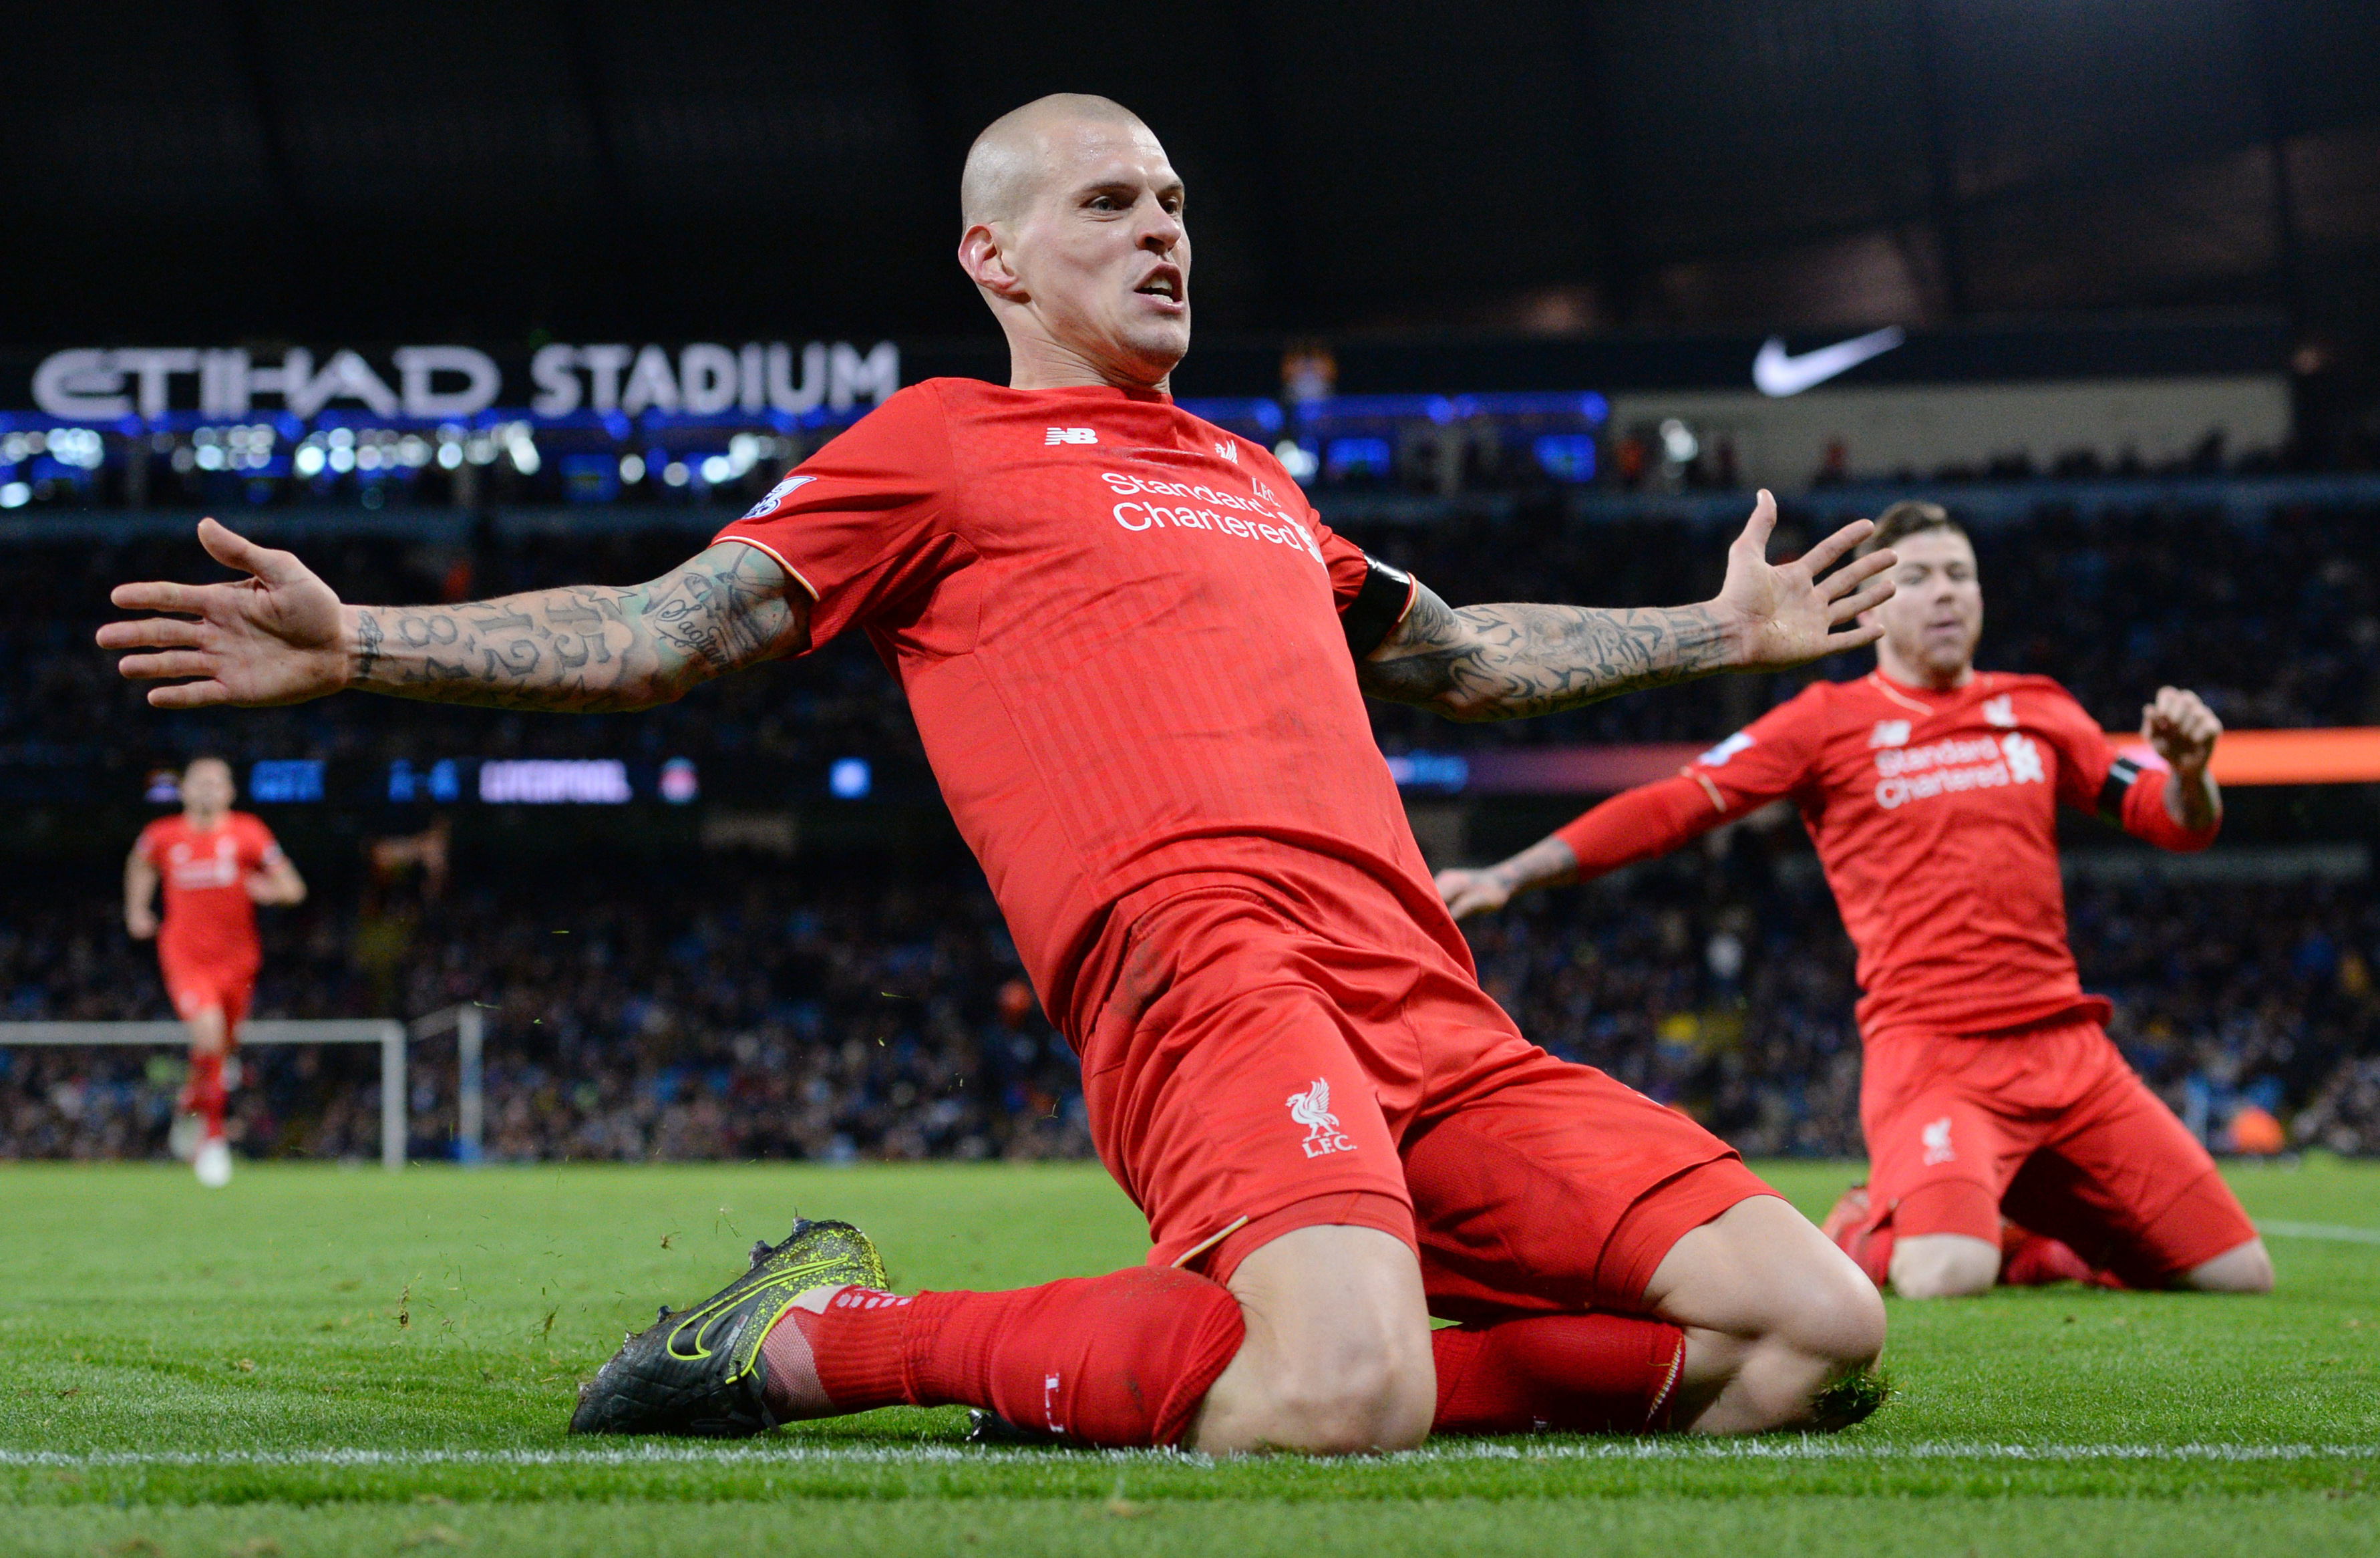 Martin Skrtel 90% certain to leave Liverpool this summer, admits agent